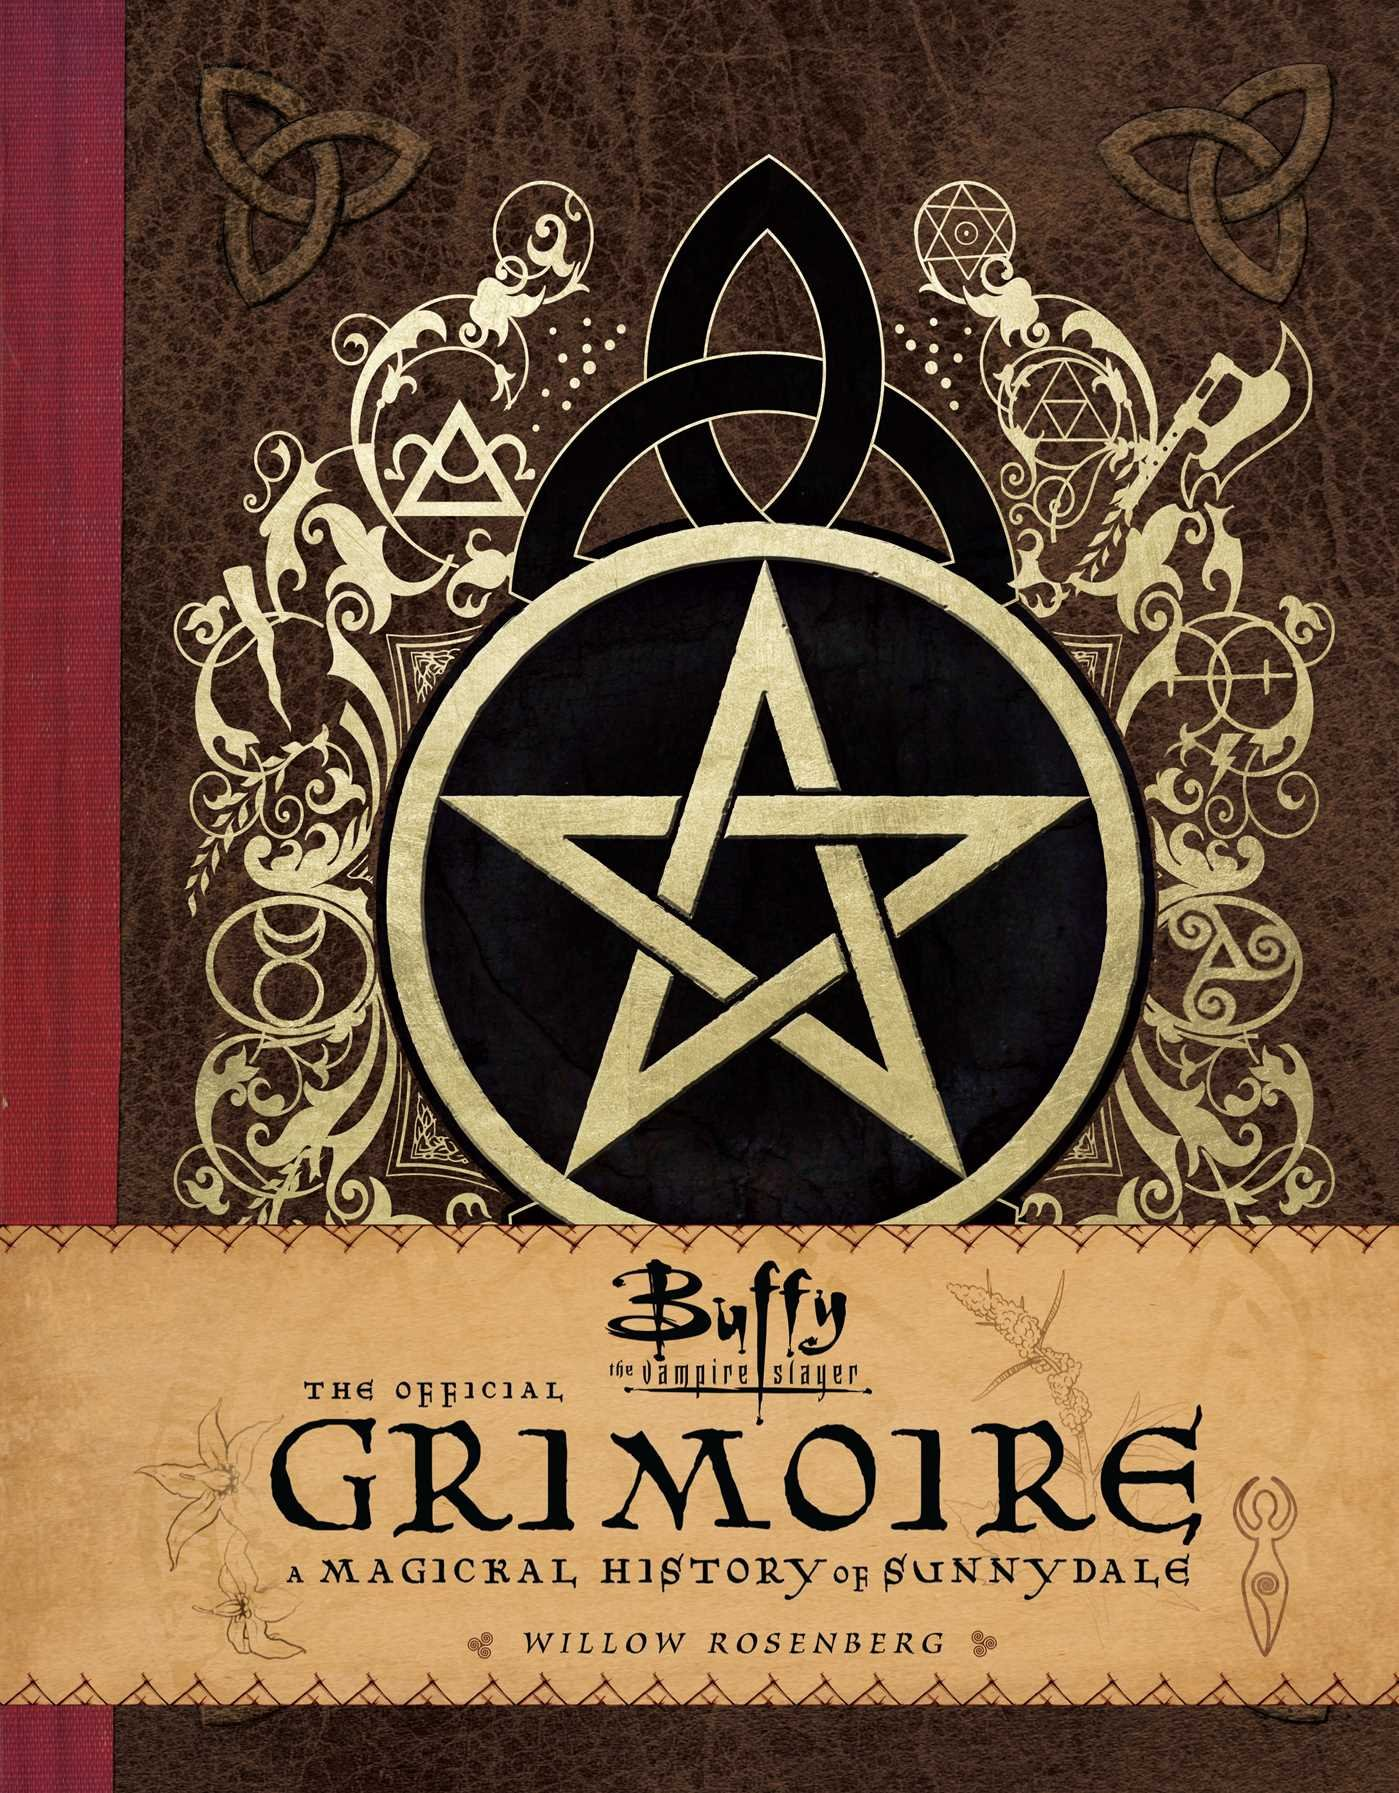 Buffy The Vampire Slayer The Official Grimoire A Magickal History